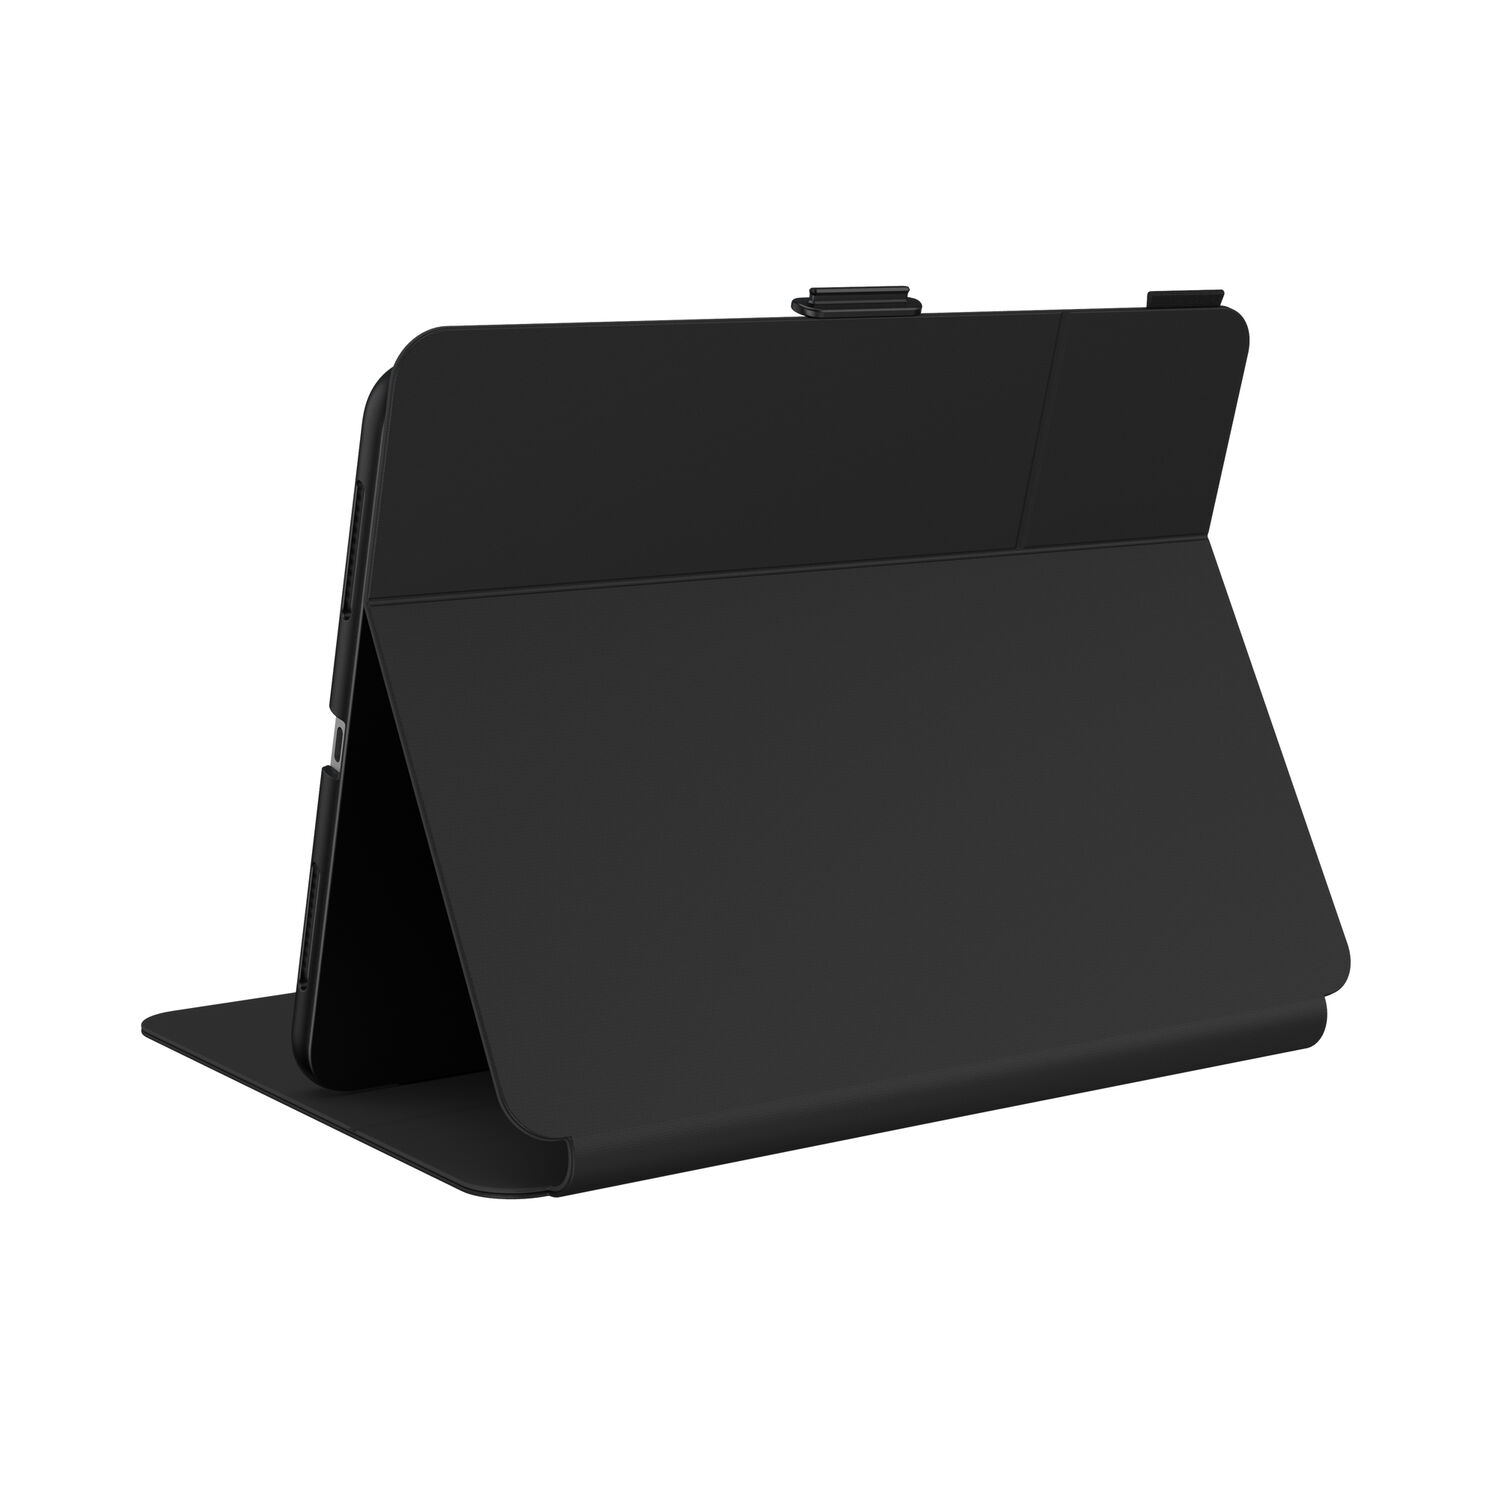 Speck Balance Carrying Case (Folio) for 10.9in iPad Air (2020) - Black /Black at Small Dog Electronics